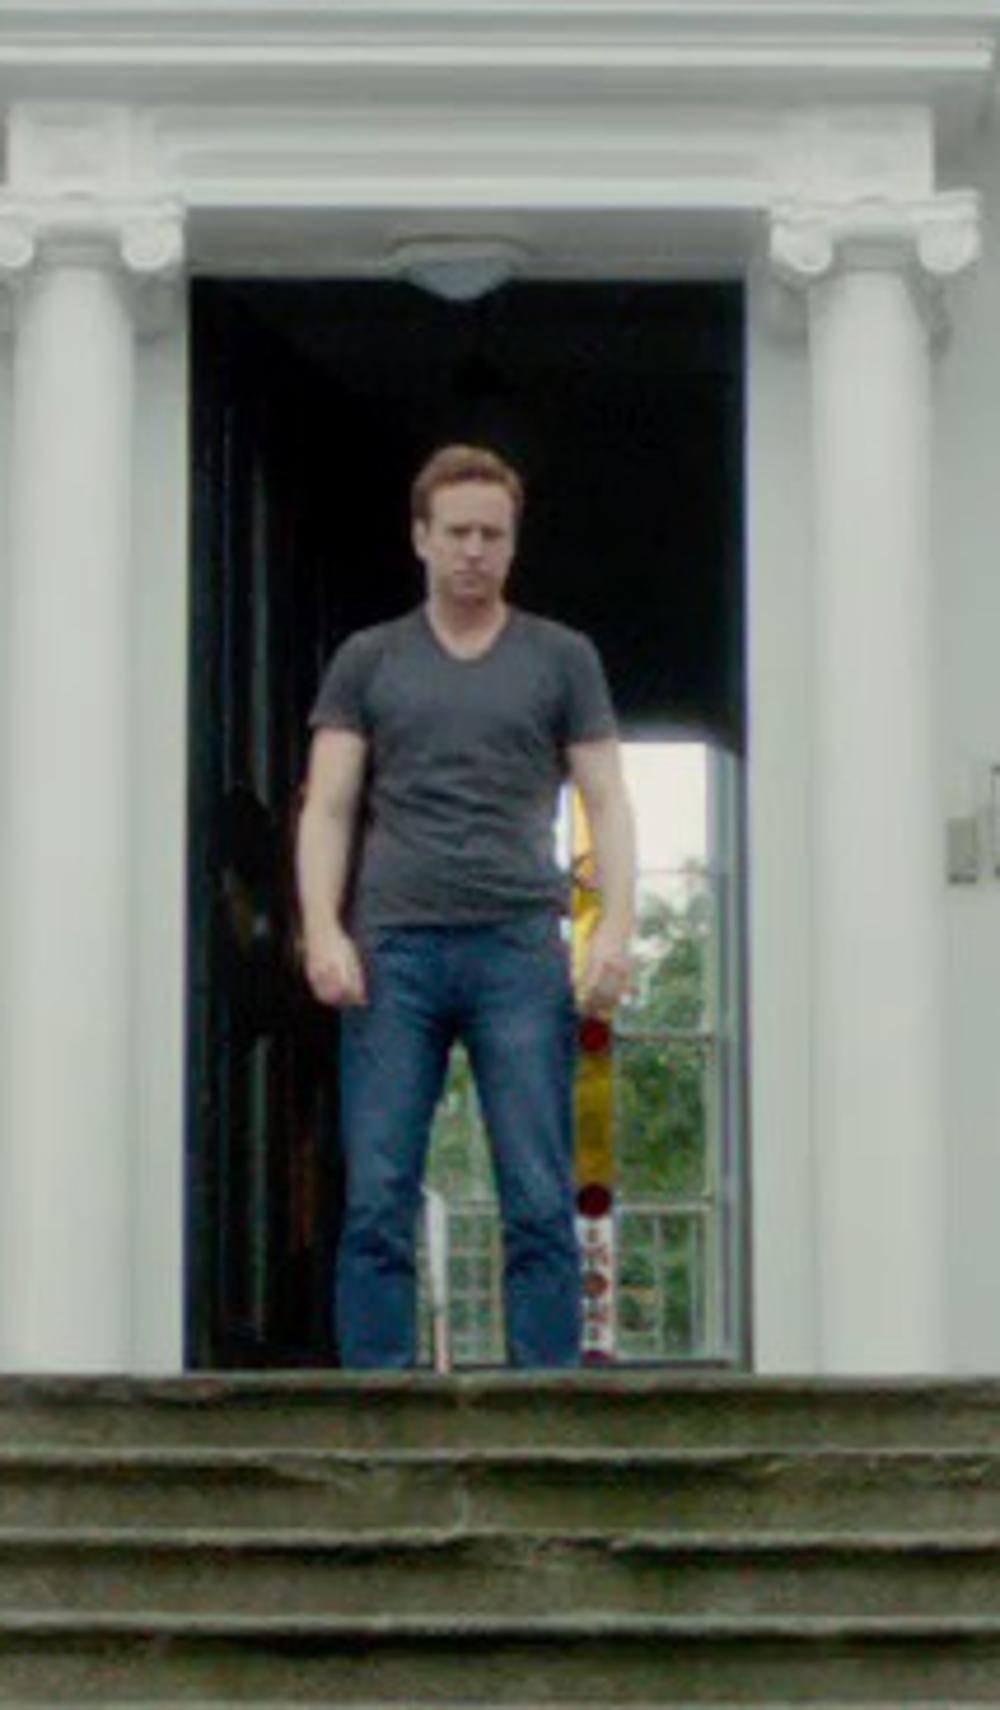 Rafe Spall with AG Adriano Goldschmied Dylan Skinny Jeans in What If